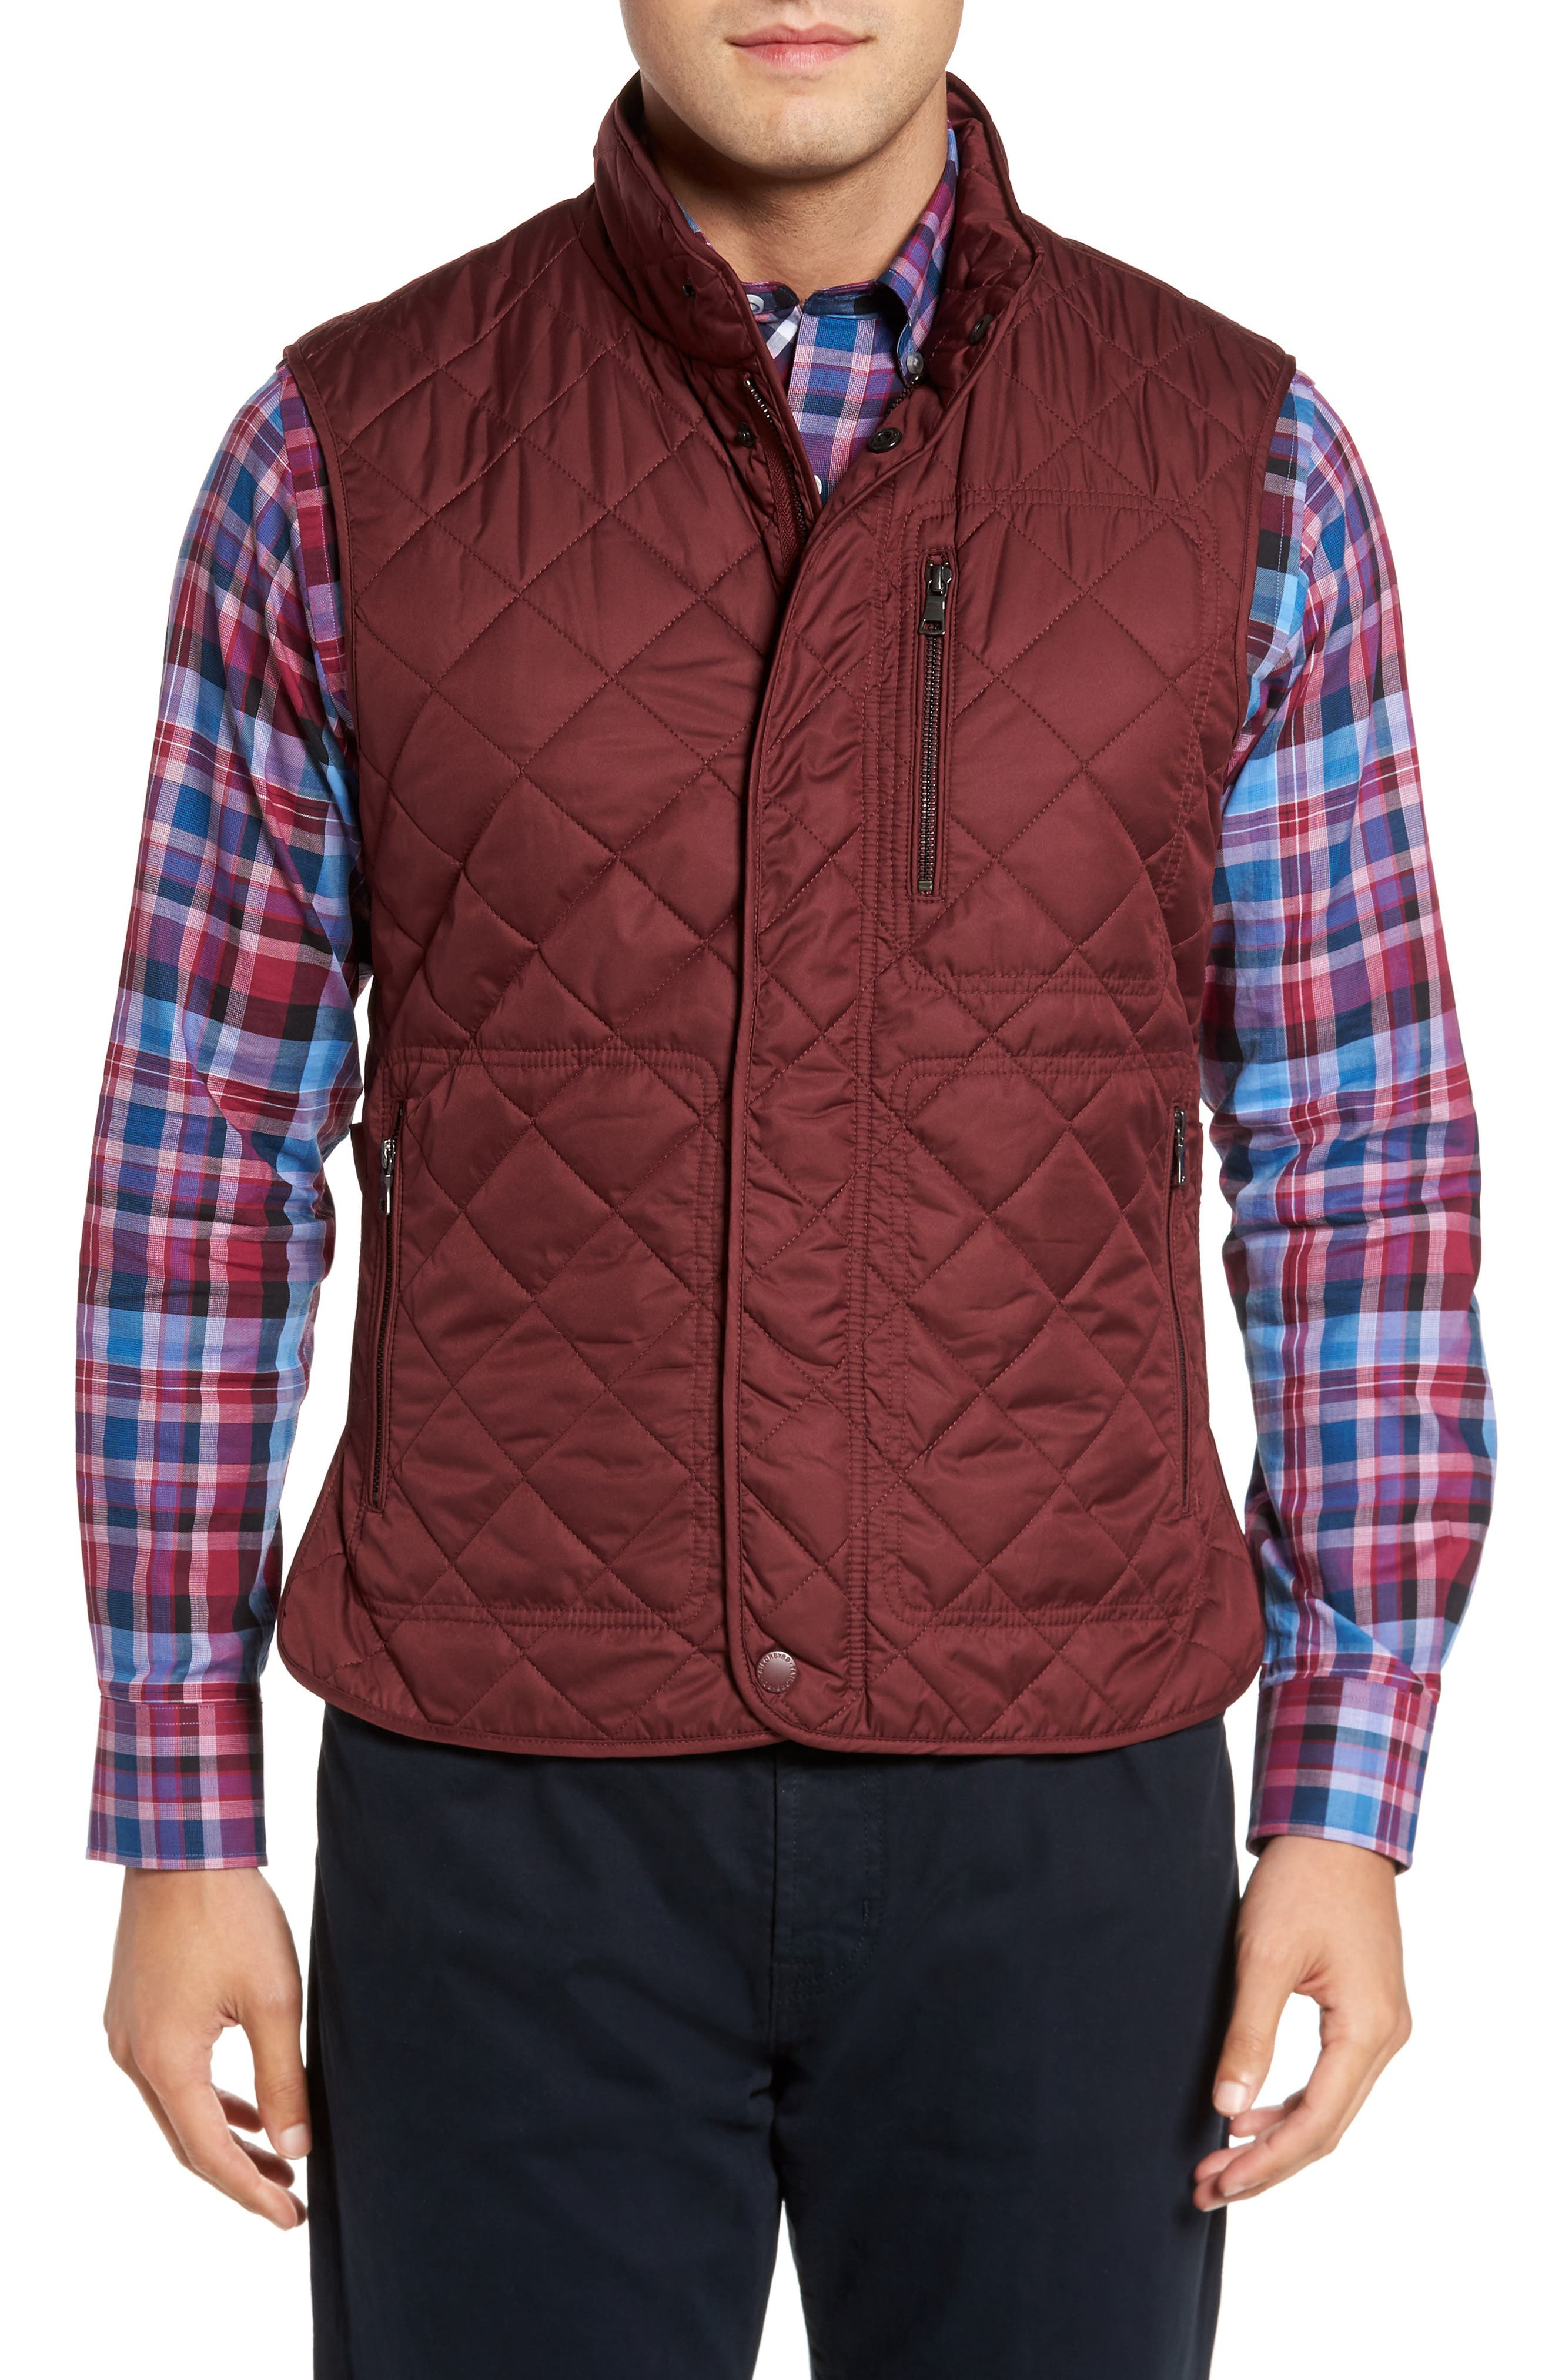 Hessmer Quilted Vest,                             Main thumbnail 1, color,